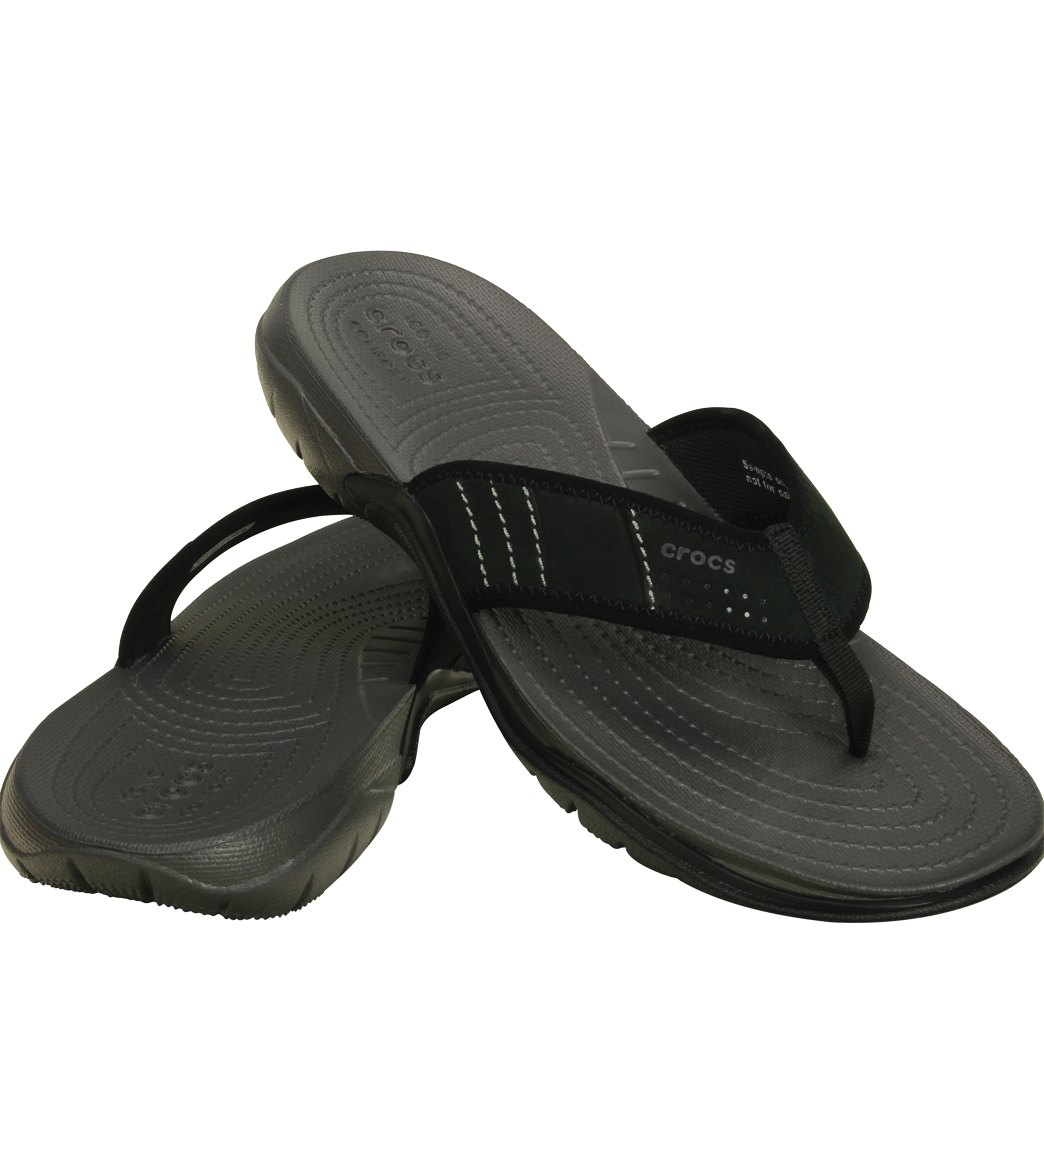 860d5a01f196 Crocs Men s Swiftwater Flip Flop at SwimOutlet.com